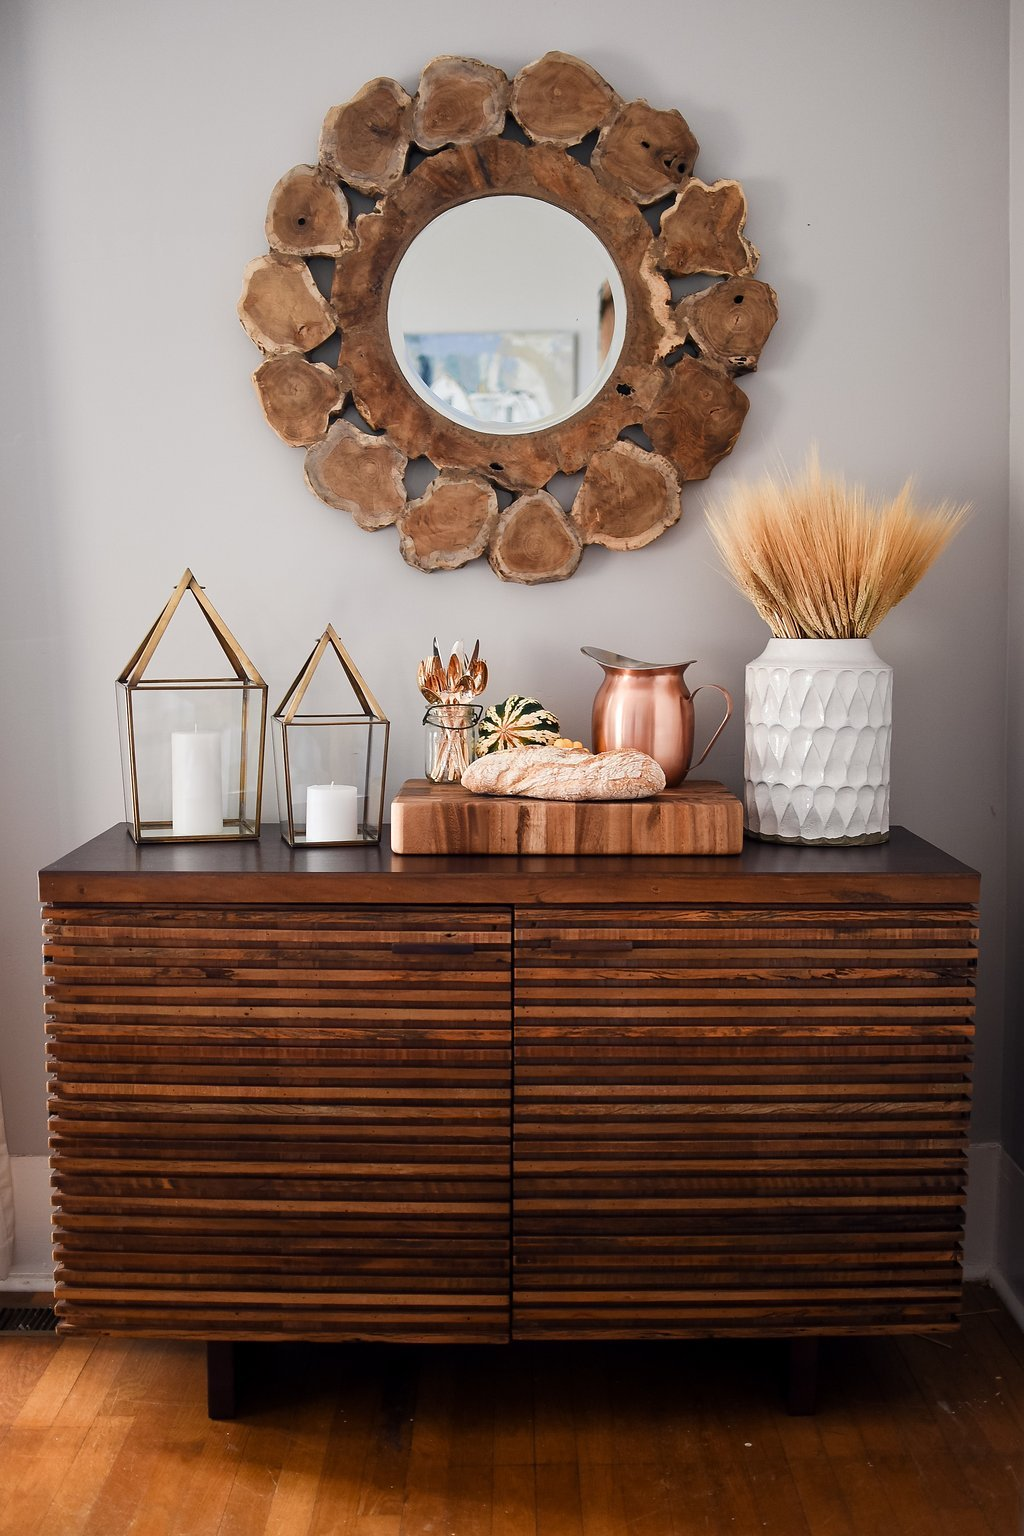 Festive Sideboard Decorating Ideas | Crate and Barrel Blog